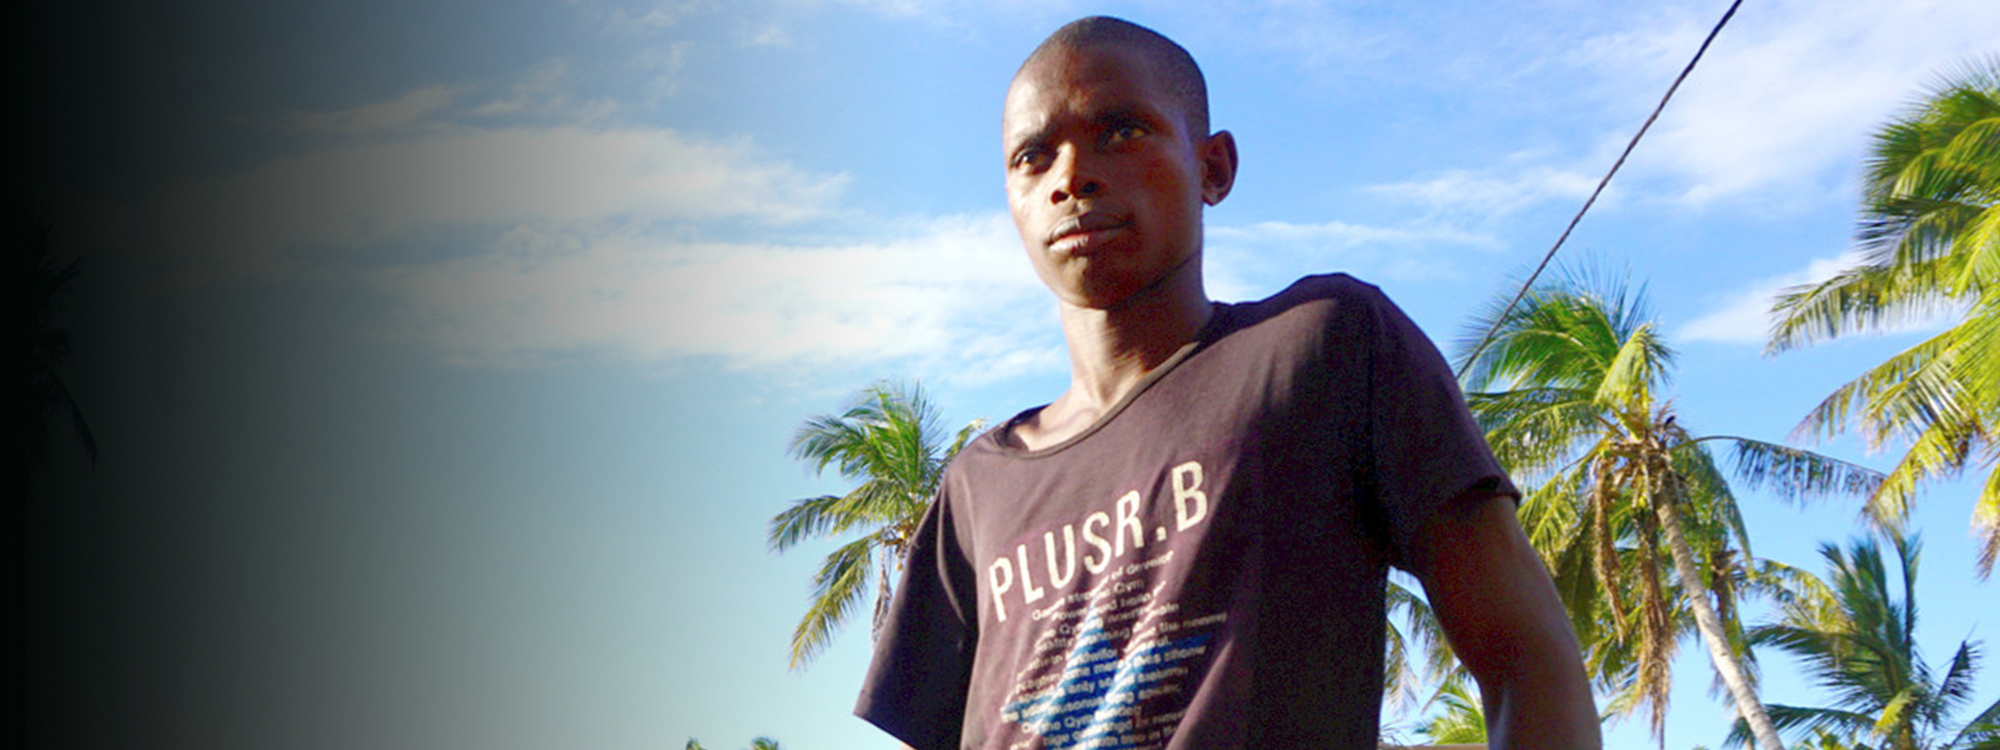 A man in Mozambique